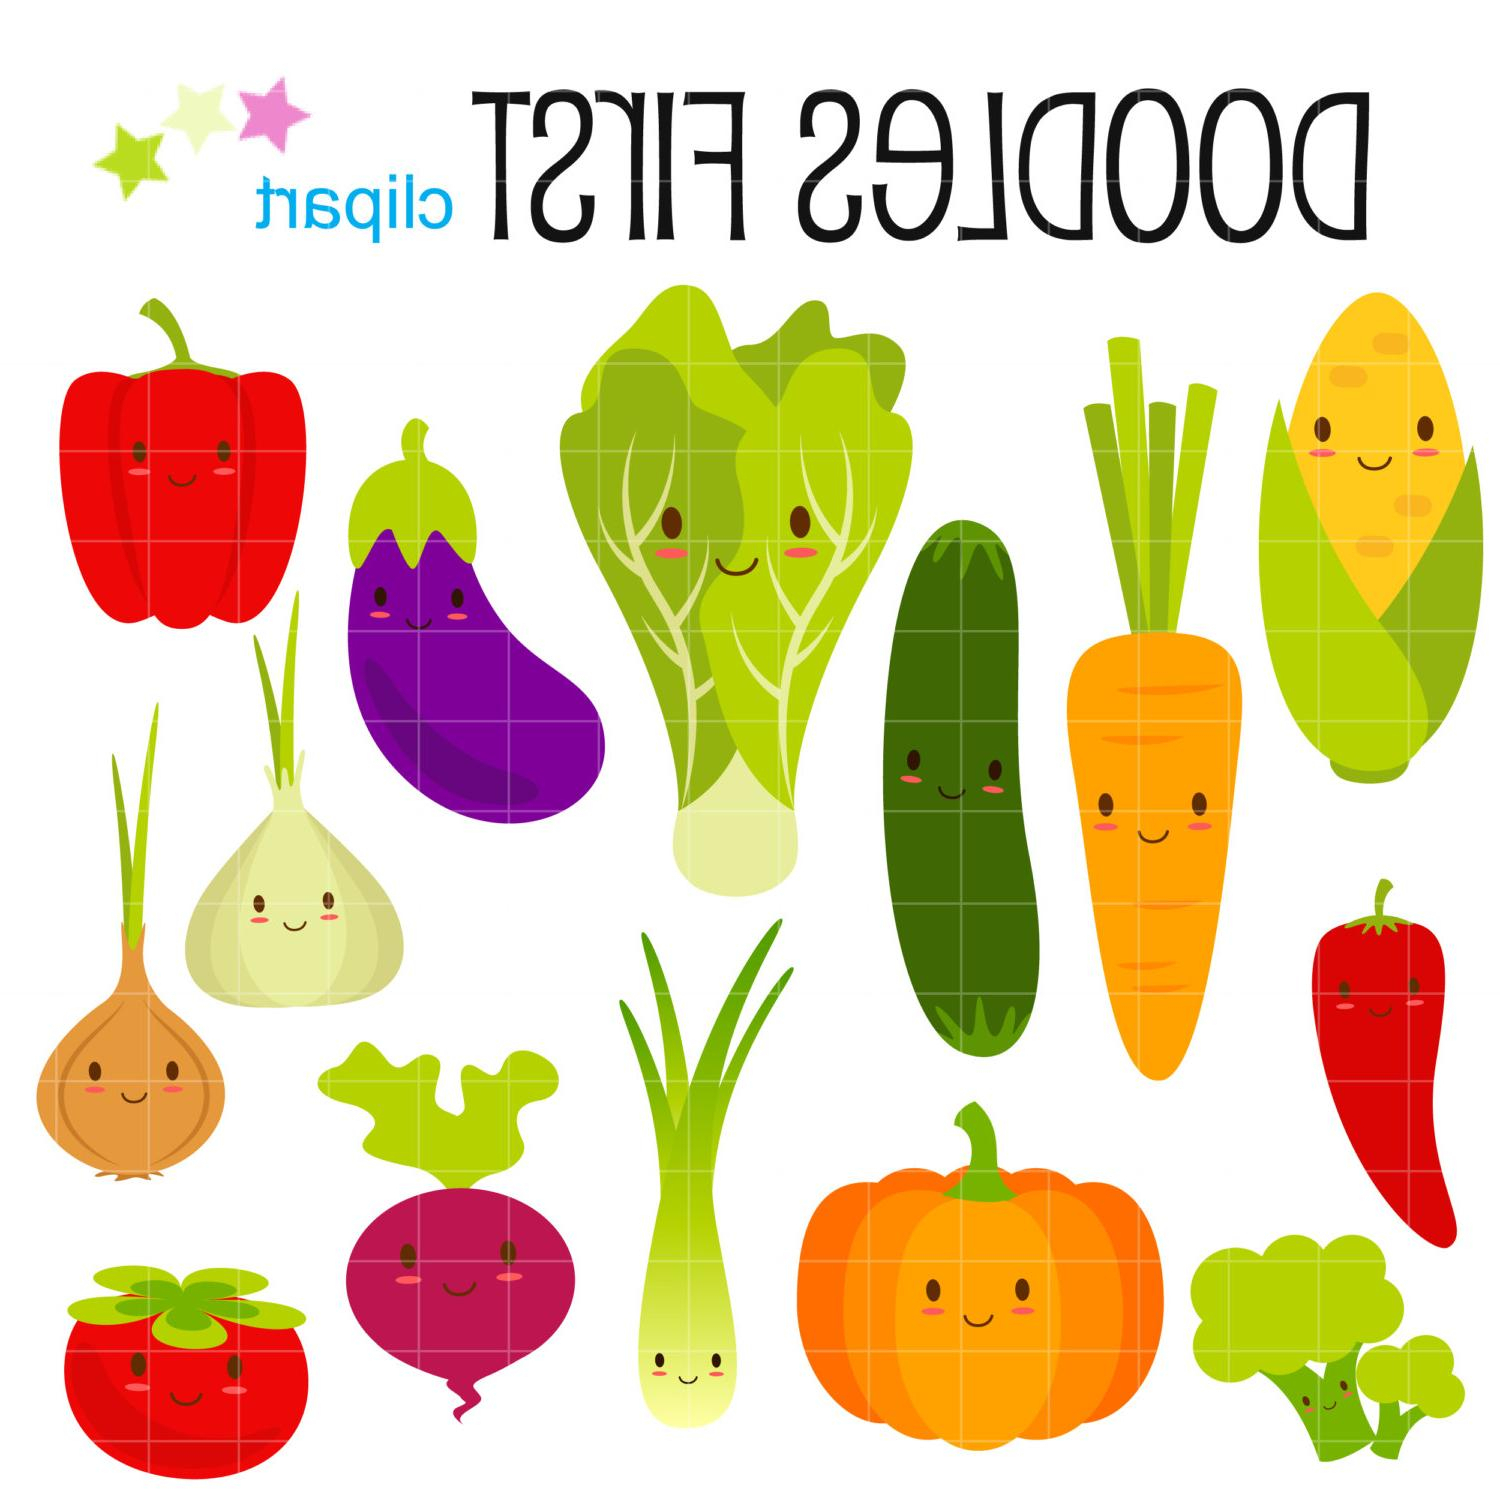 1500x1500 Drawing Of Fruits And Vegetables Best 15 Fruits And Vegetables